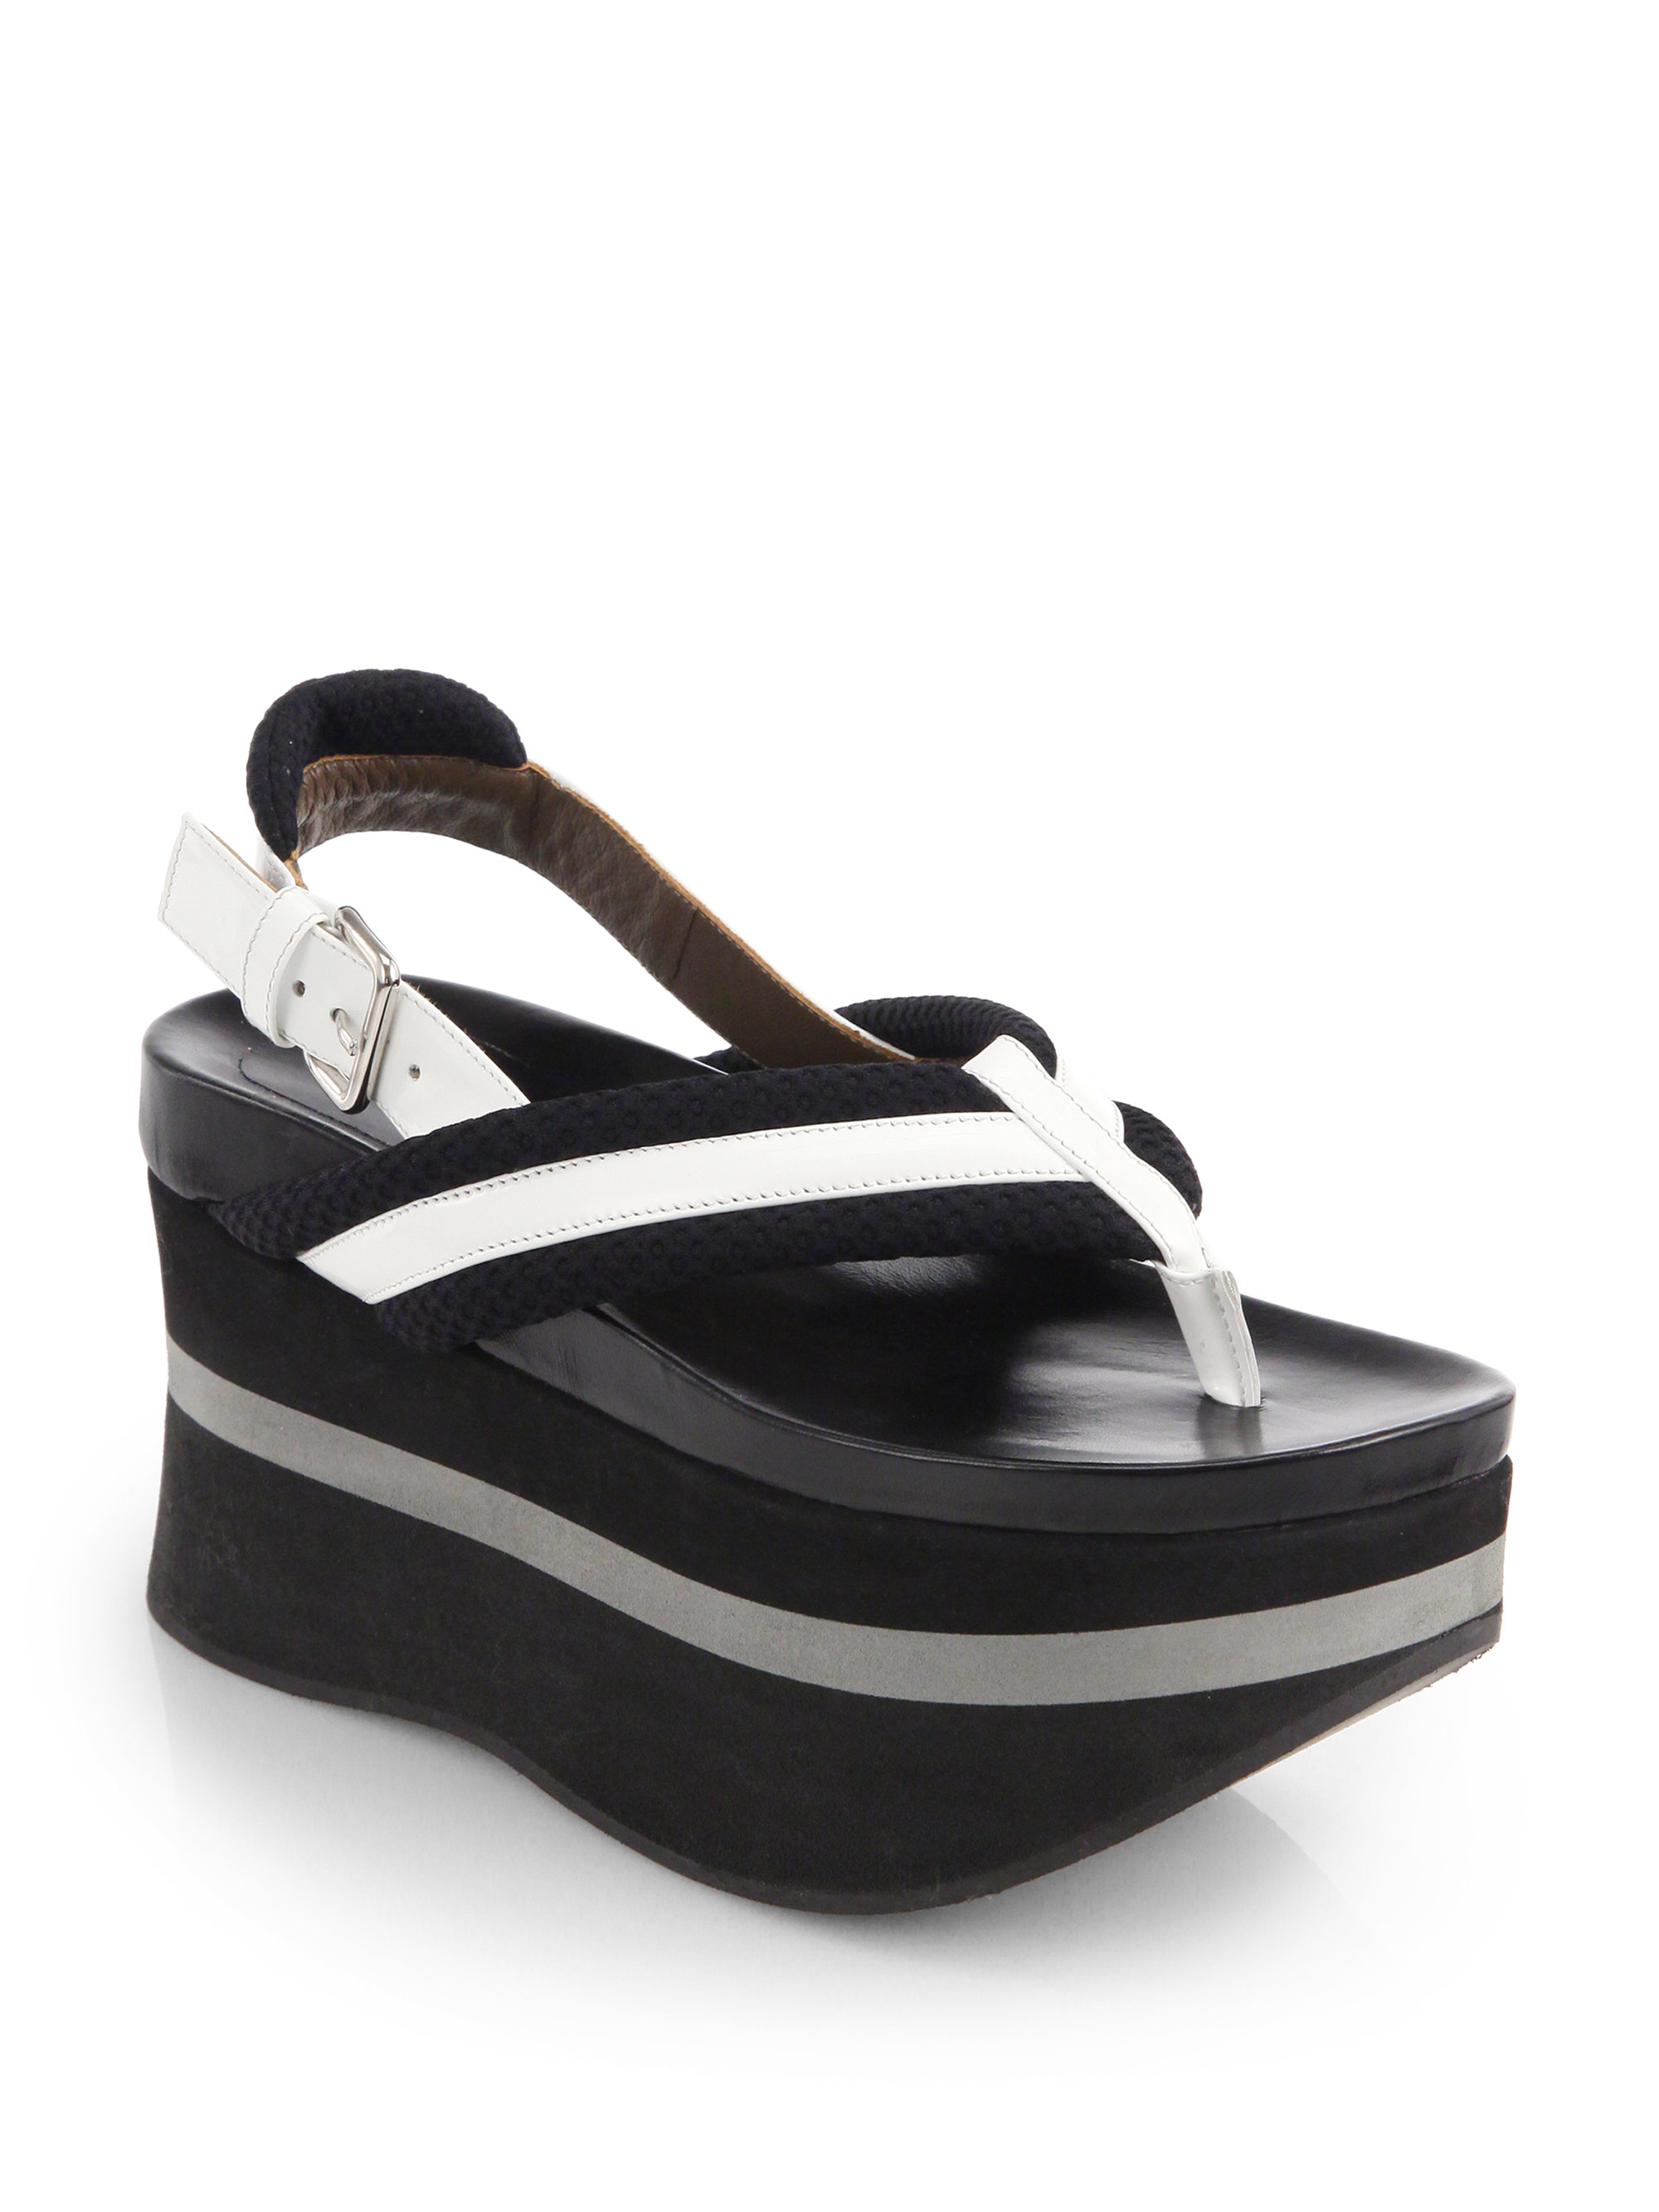 1da15dcbe0bce Lyst - Marni Patent Leather Canvas Platform Sandals in White